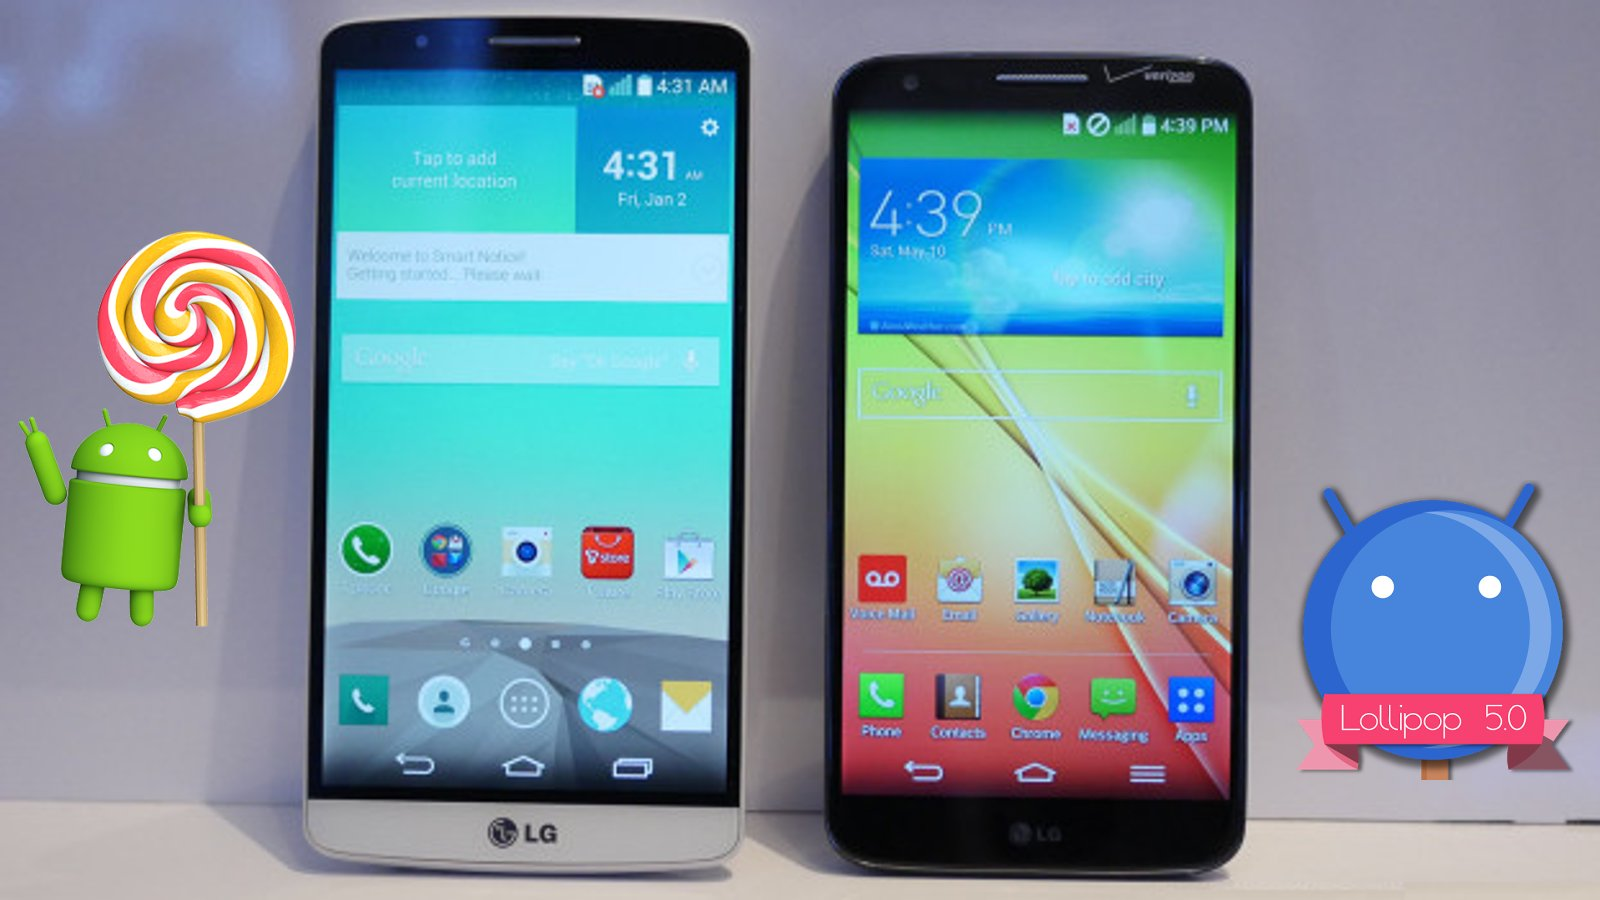 Android 5.0 Lollipop Updates For T-Mobile LG G3 And LG G2 Enters Carrier Testing